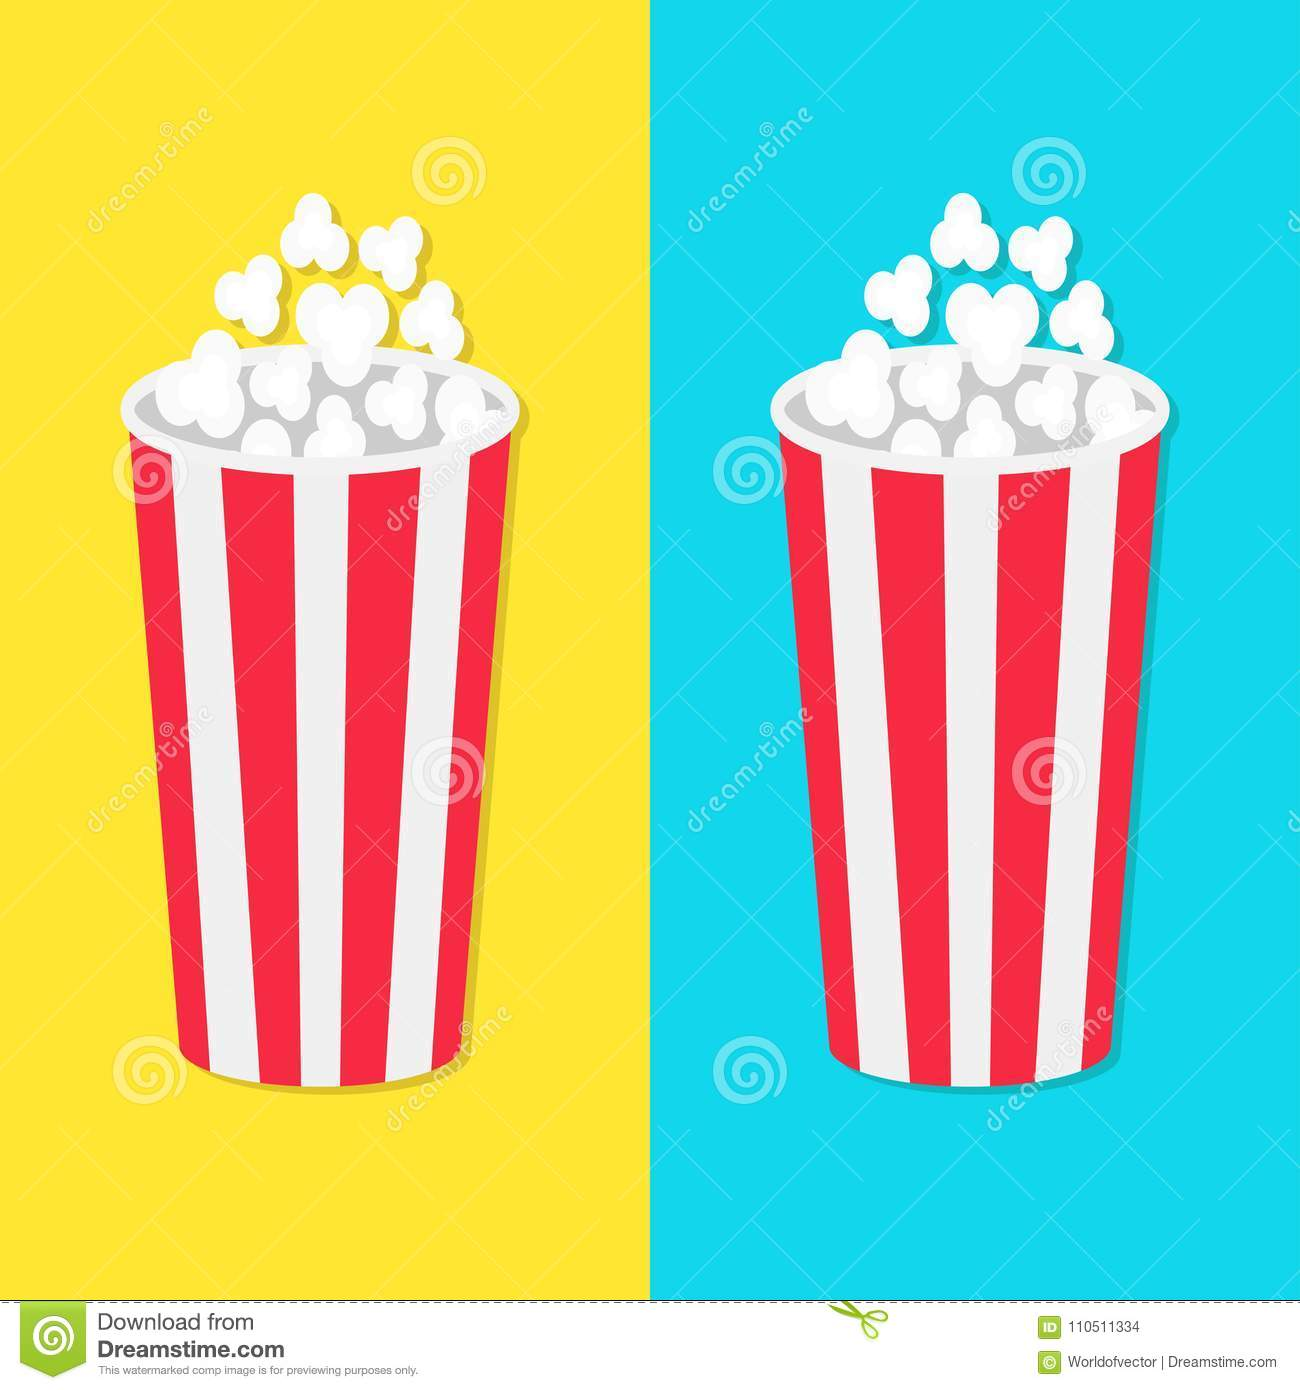 Popcorn round bucket box set movie cinema icon in flat design style popcorn round bucket box set movie cinema icon in flat design style pop corn popping fast food blue yellow background template vector illustration maxwellsz